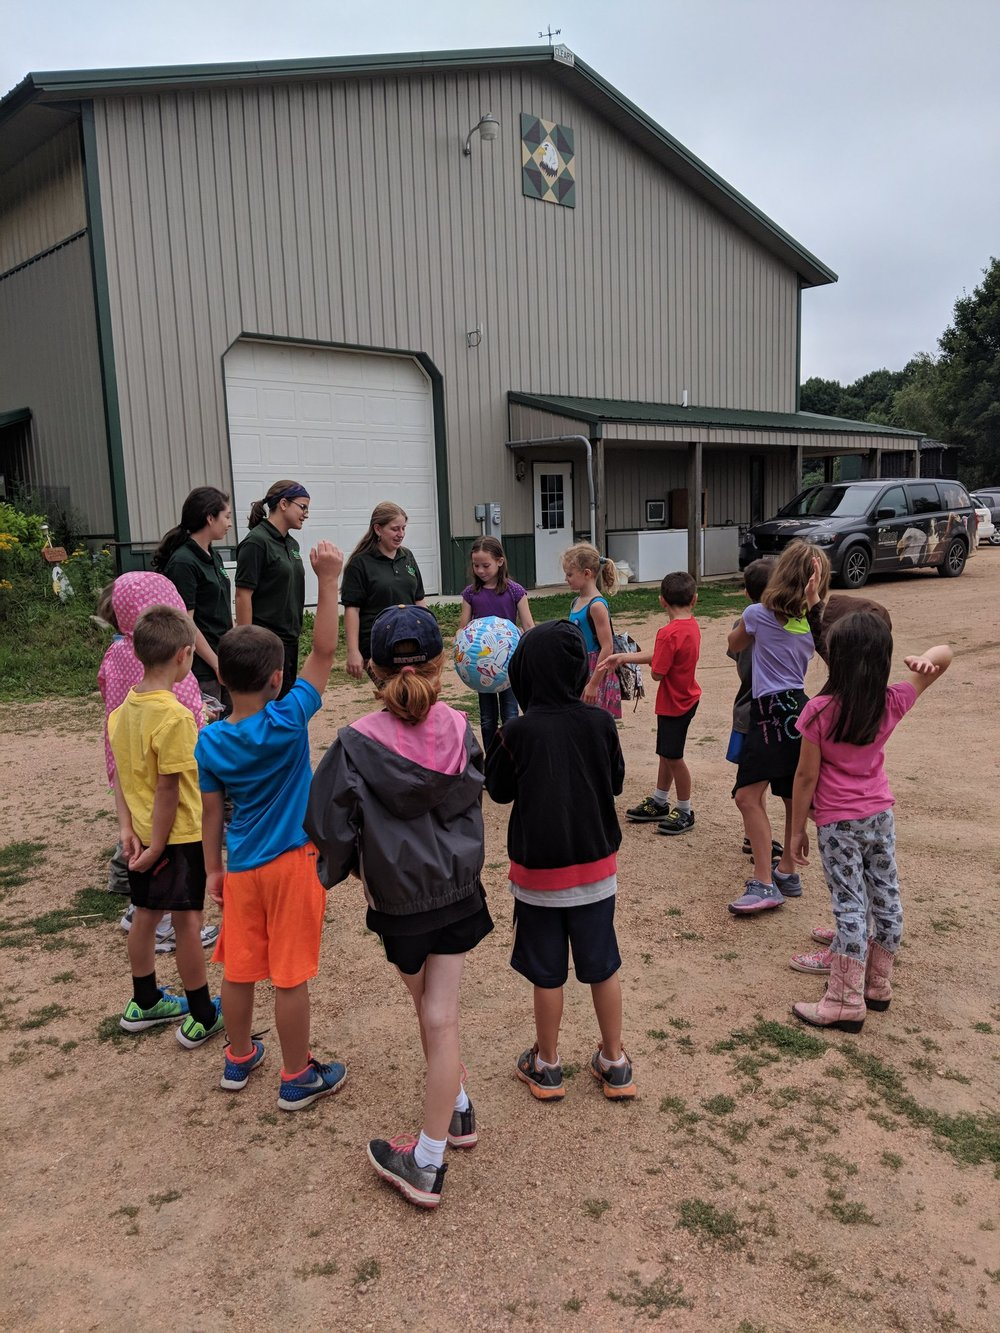 Campers got to know each other on Day 1 by playing a fun ice breaker game.